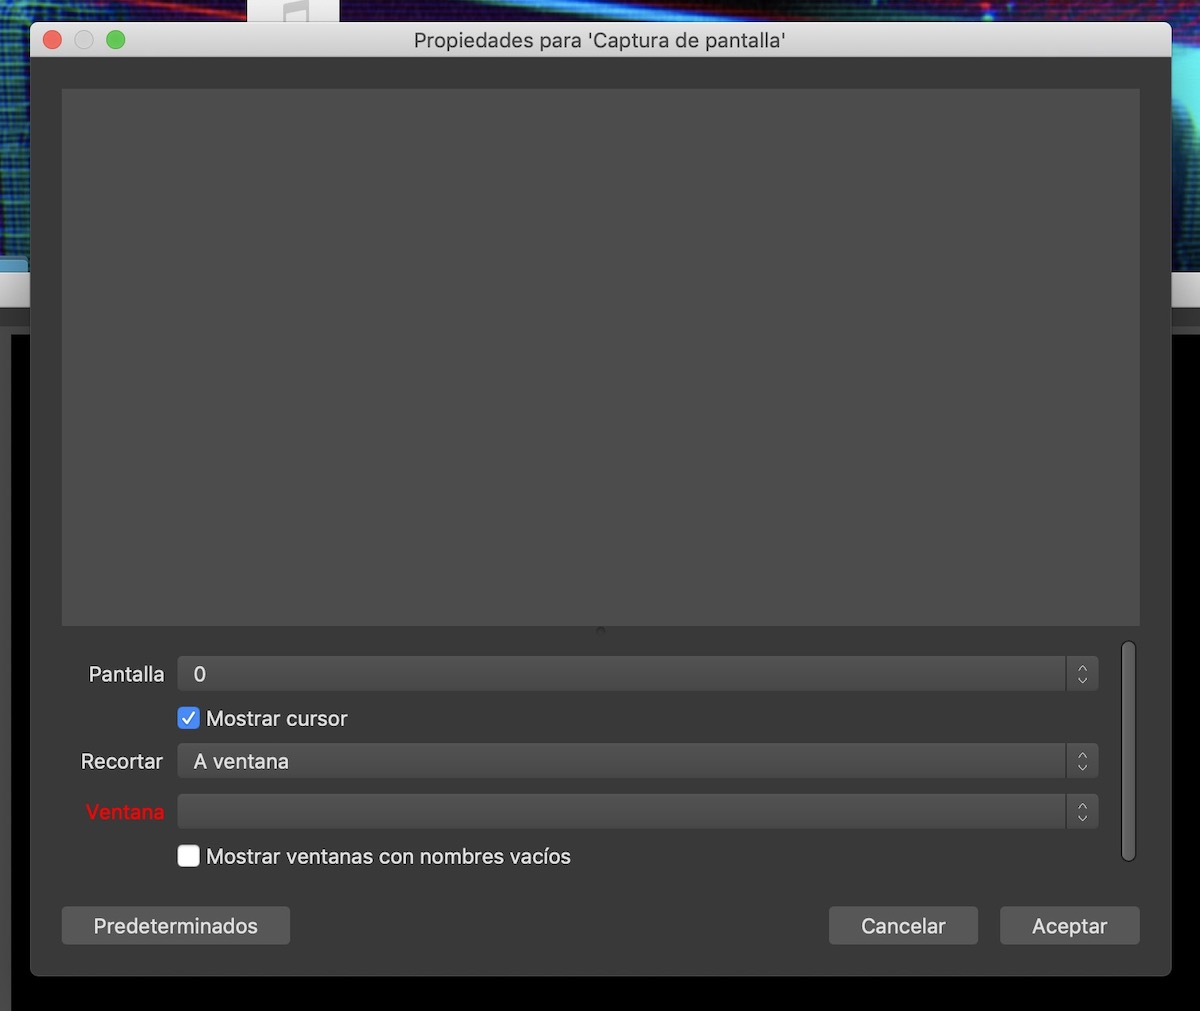 hacer streaming obs twitch 3